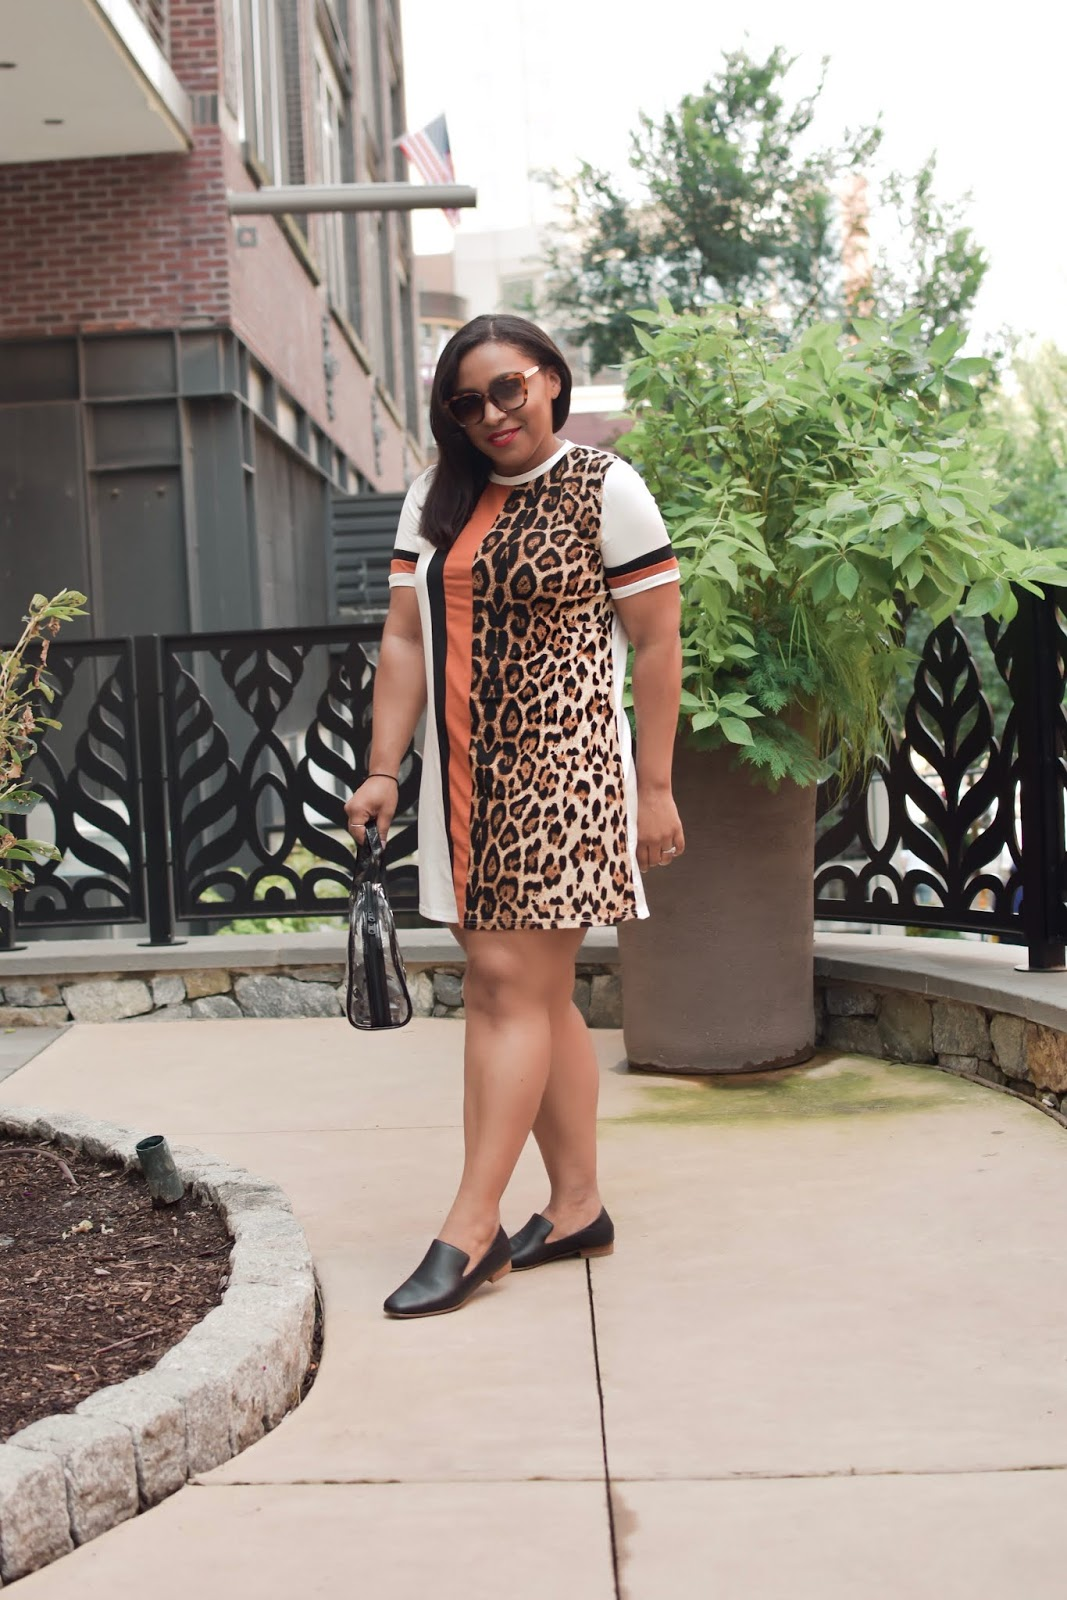 shein, shein gals, shein clothes, shein reviews, leopard dress, summer dresses, shirt dress